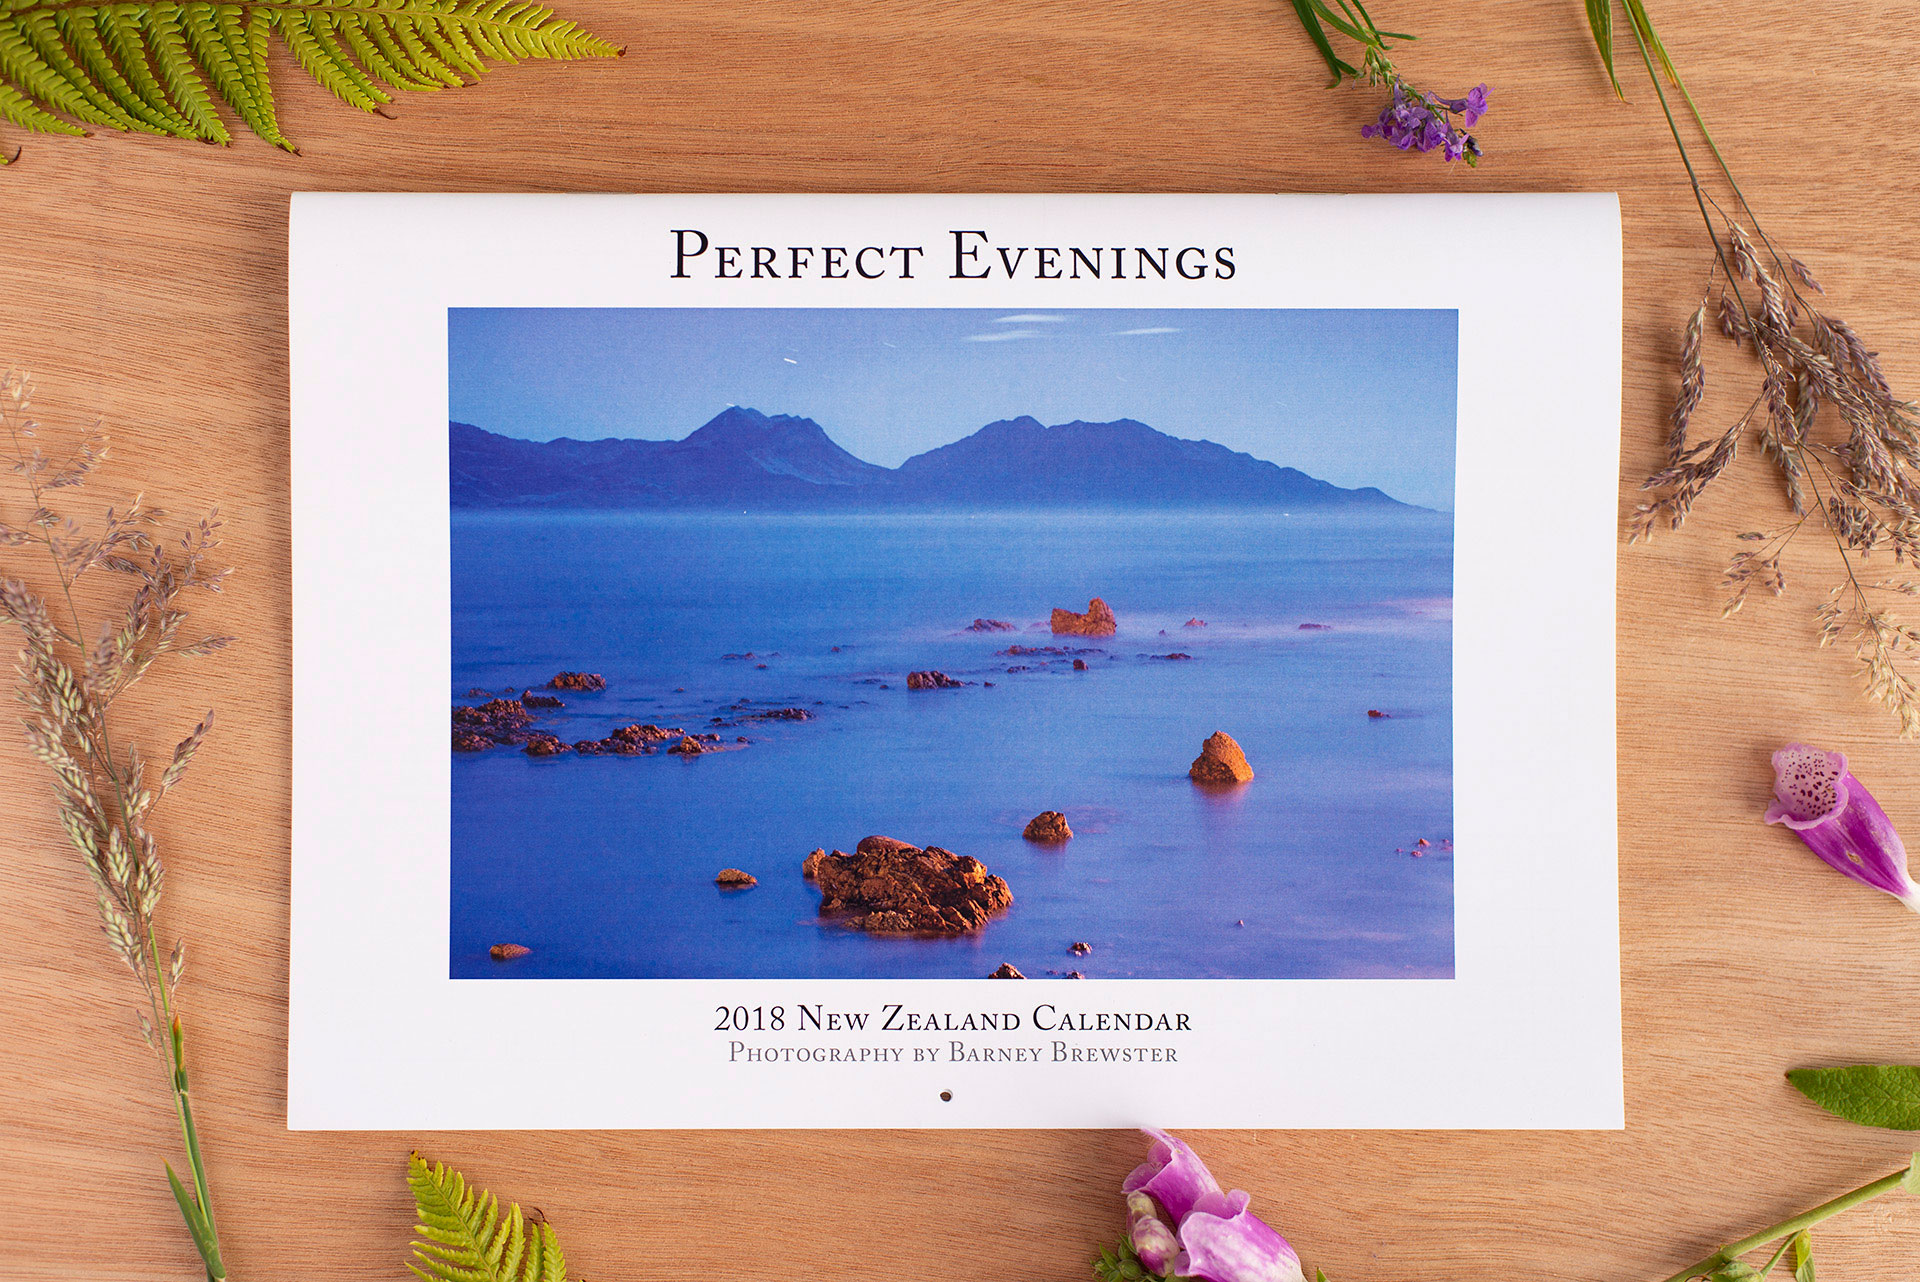 Perfect Evenings 2018 New Zealand Calendar cover by Barney Brewster, photo taken by Nana Jones